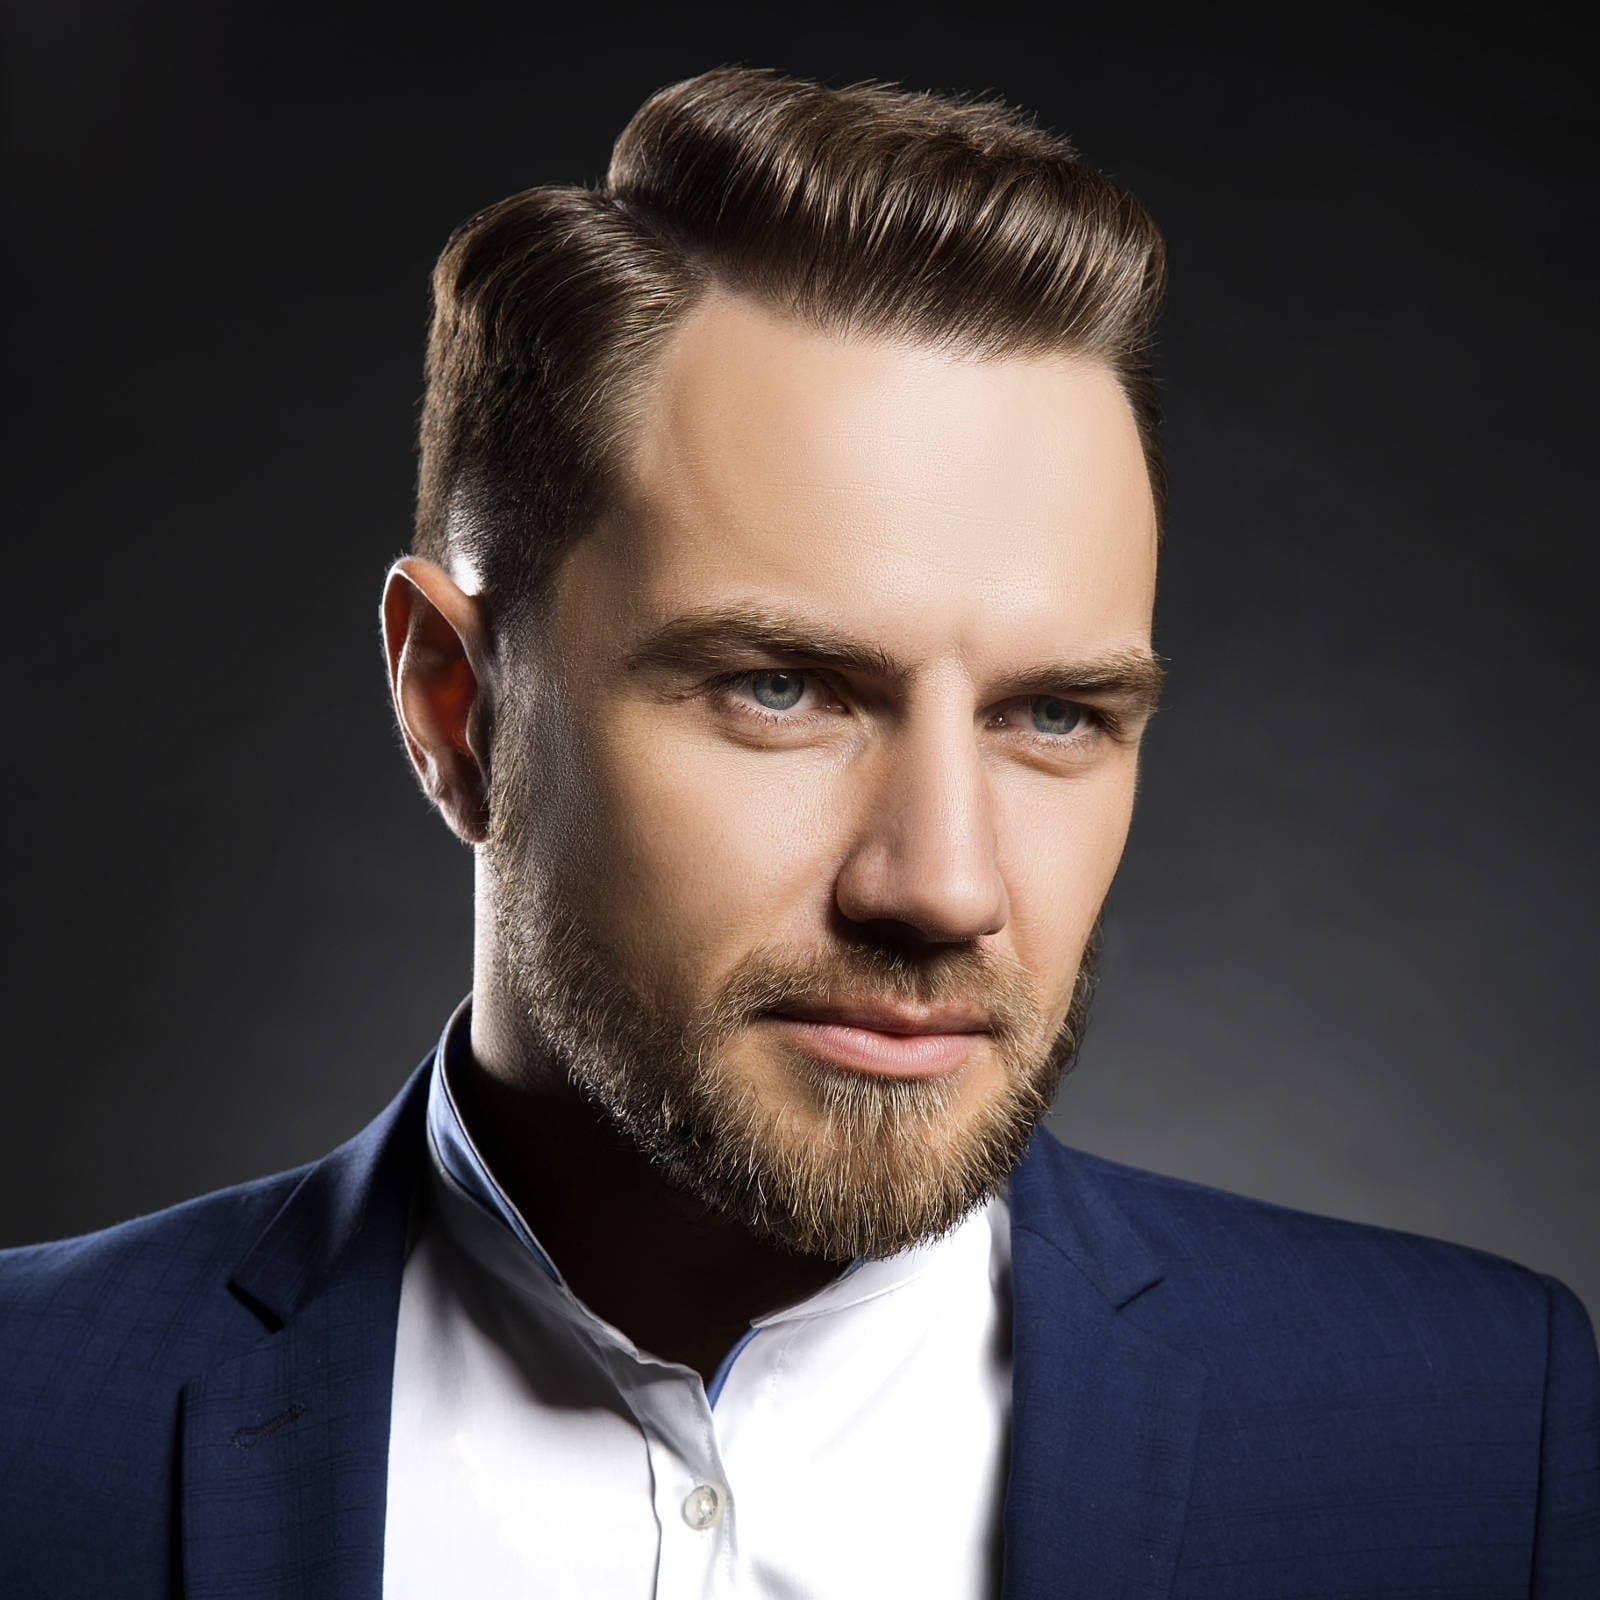 Official Hairstyle For Man In 2020 Side Part Haircut Mens Haircuts Short Mens Hairstyles